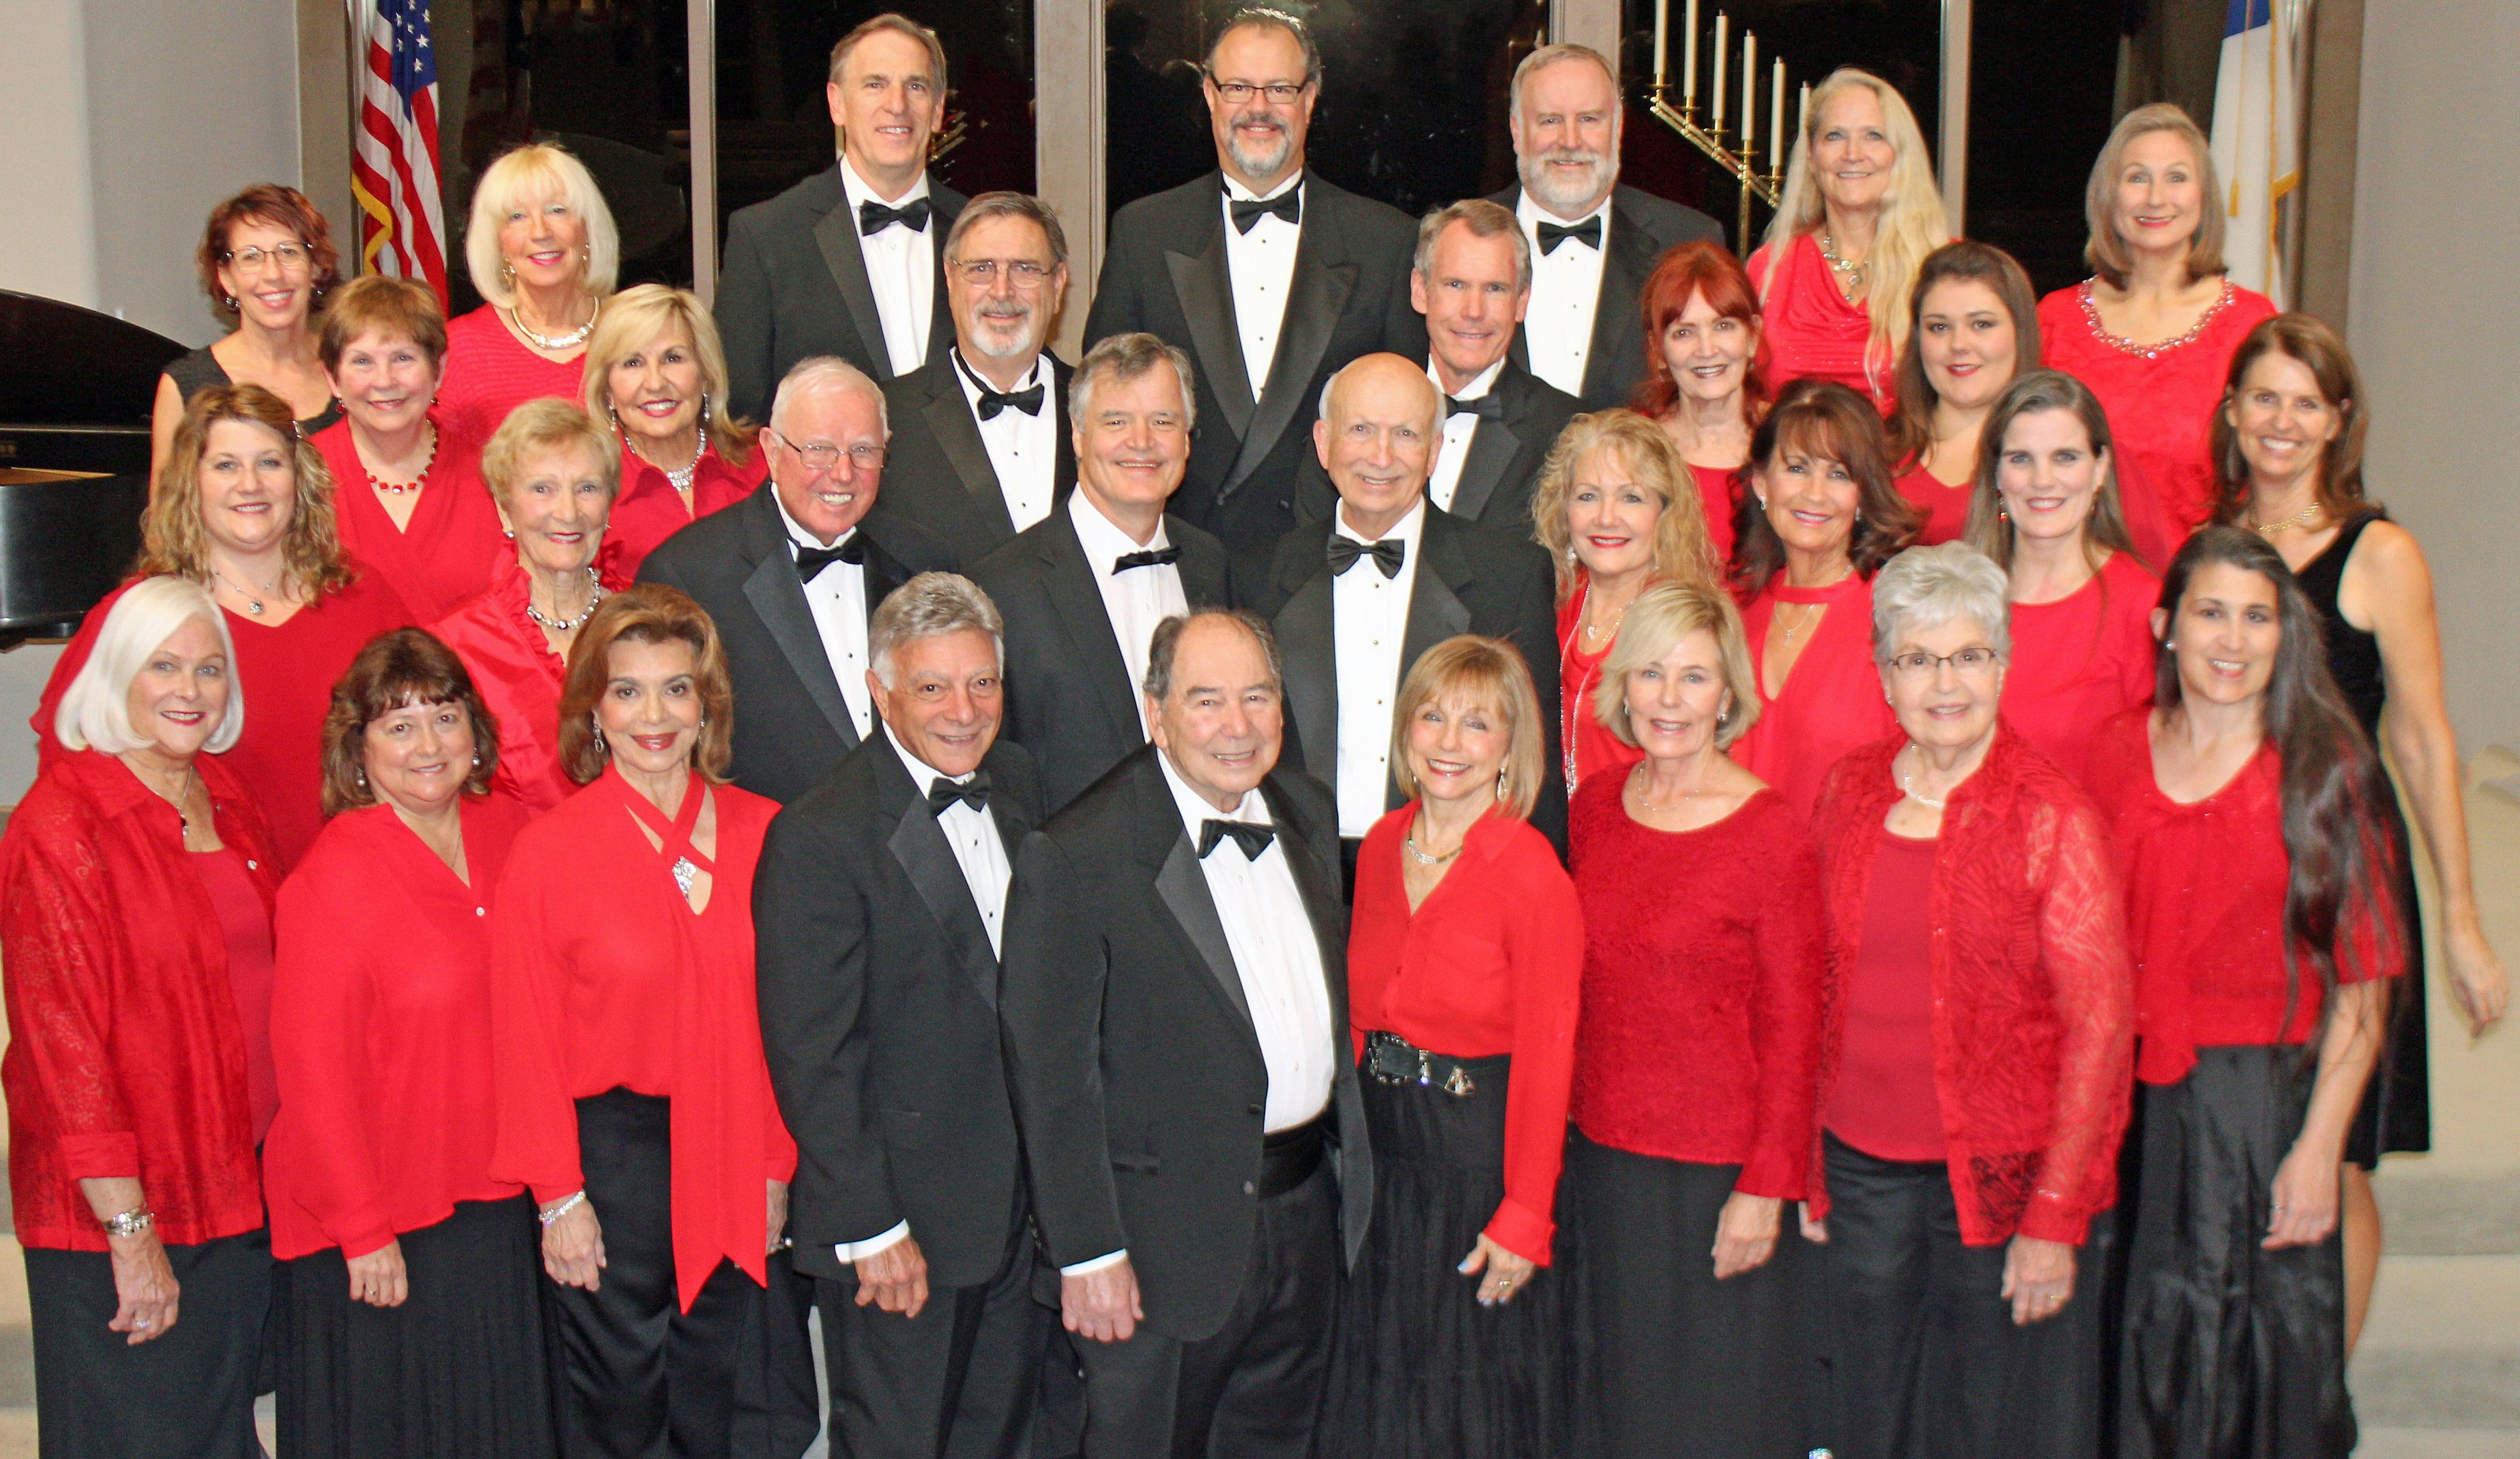 Upscale Singers, a large adult choral organization posed for a group shot.